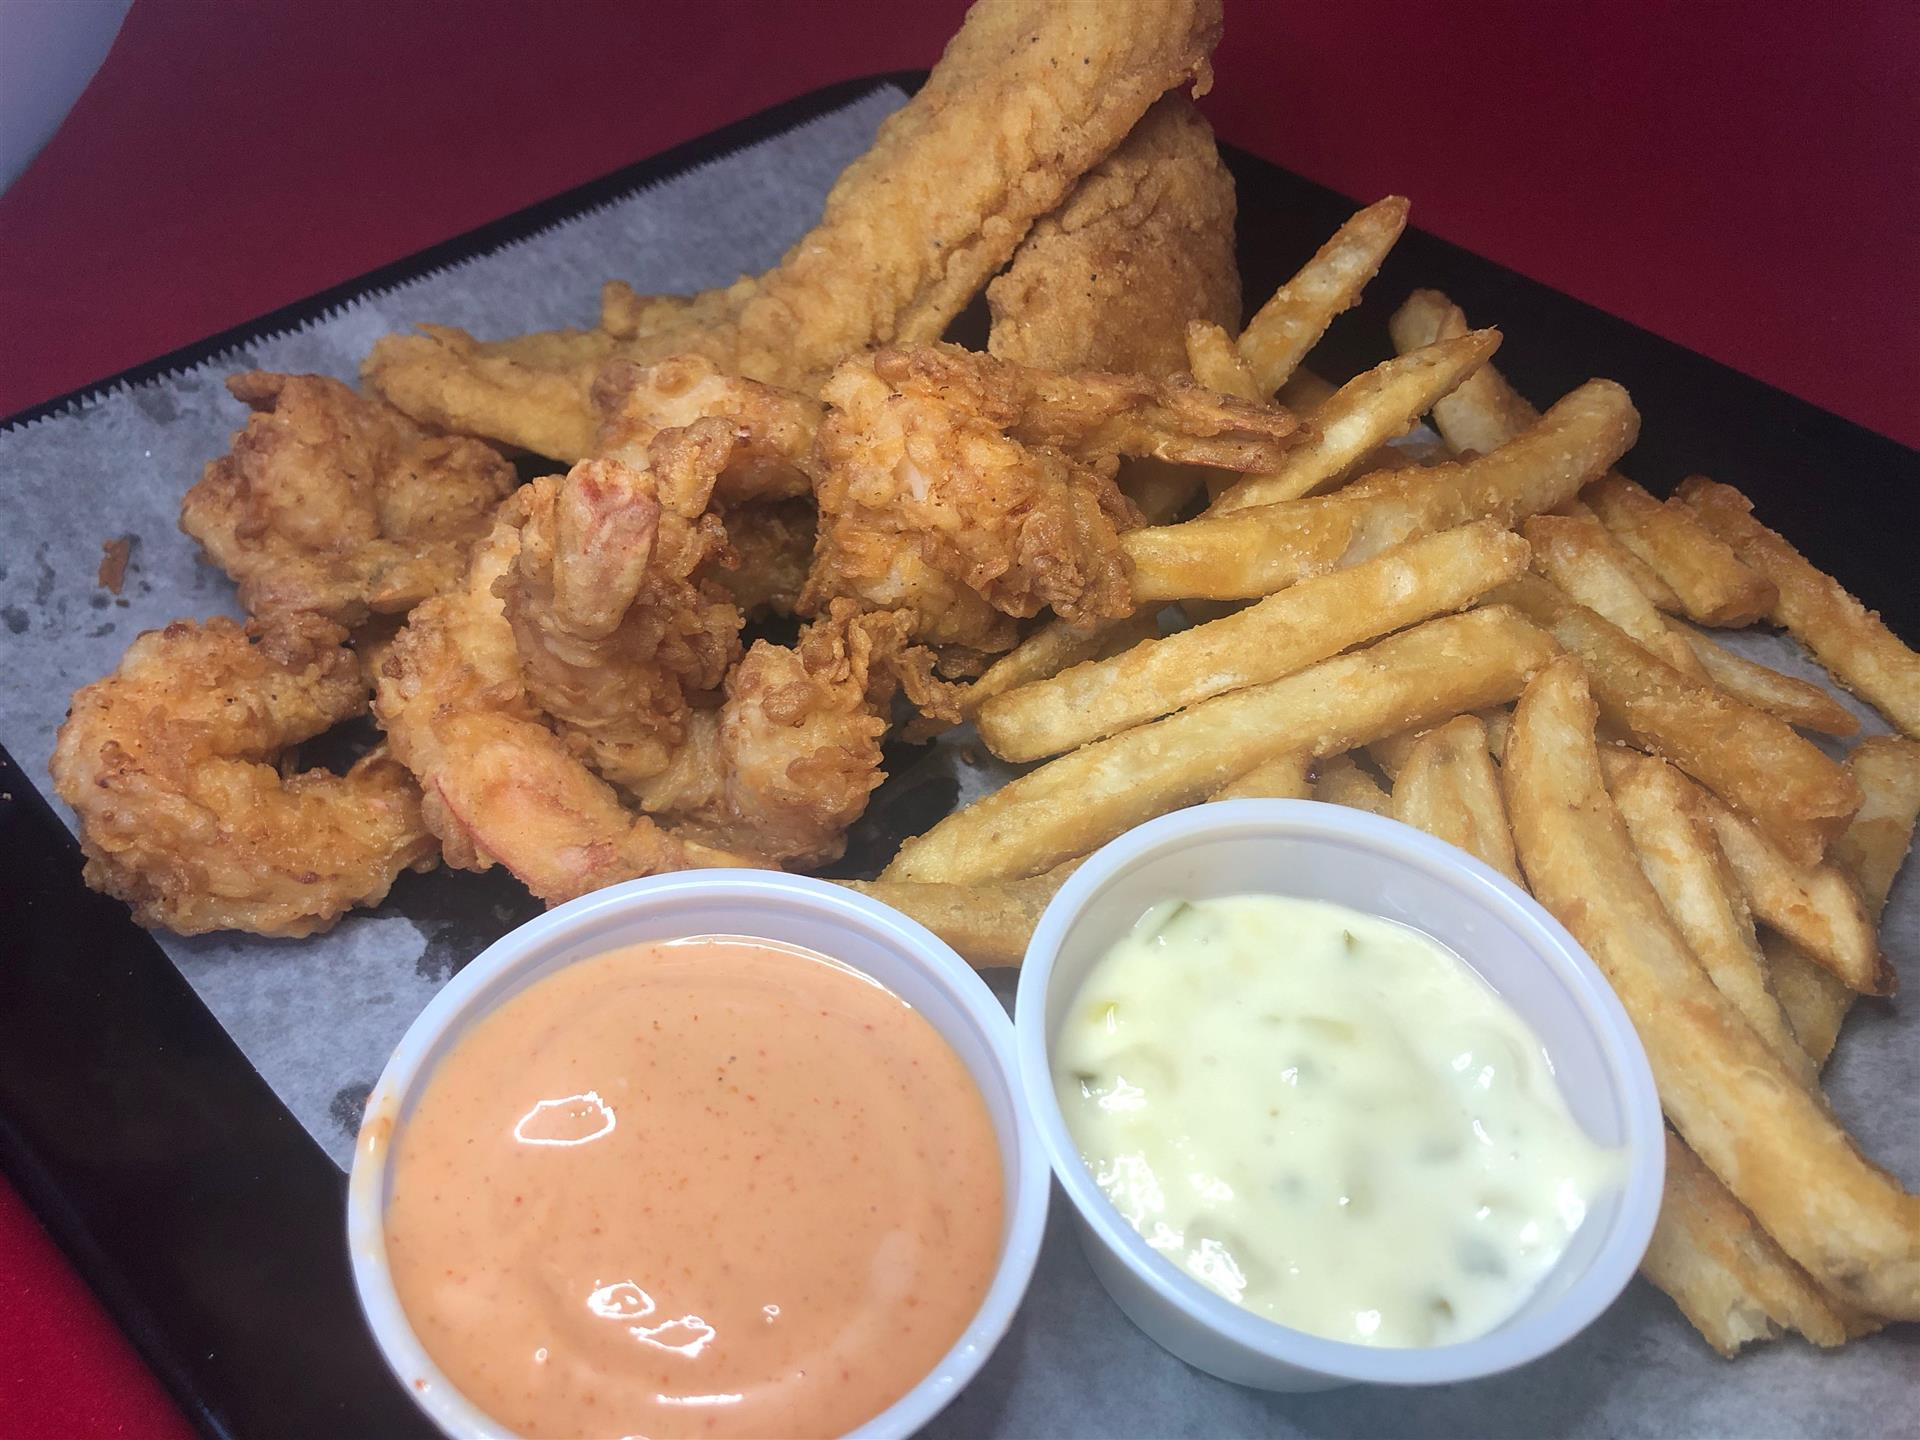 chicken fingers with fries and dipping sauces